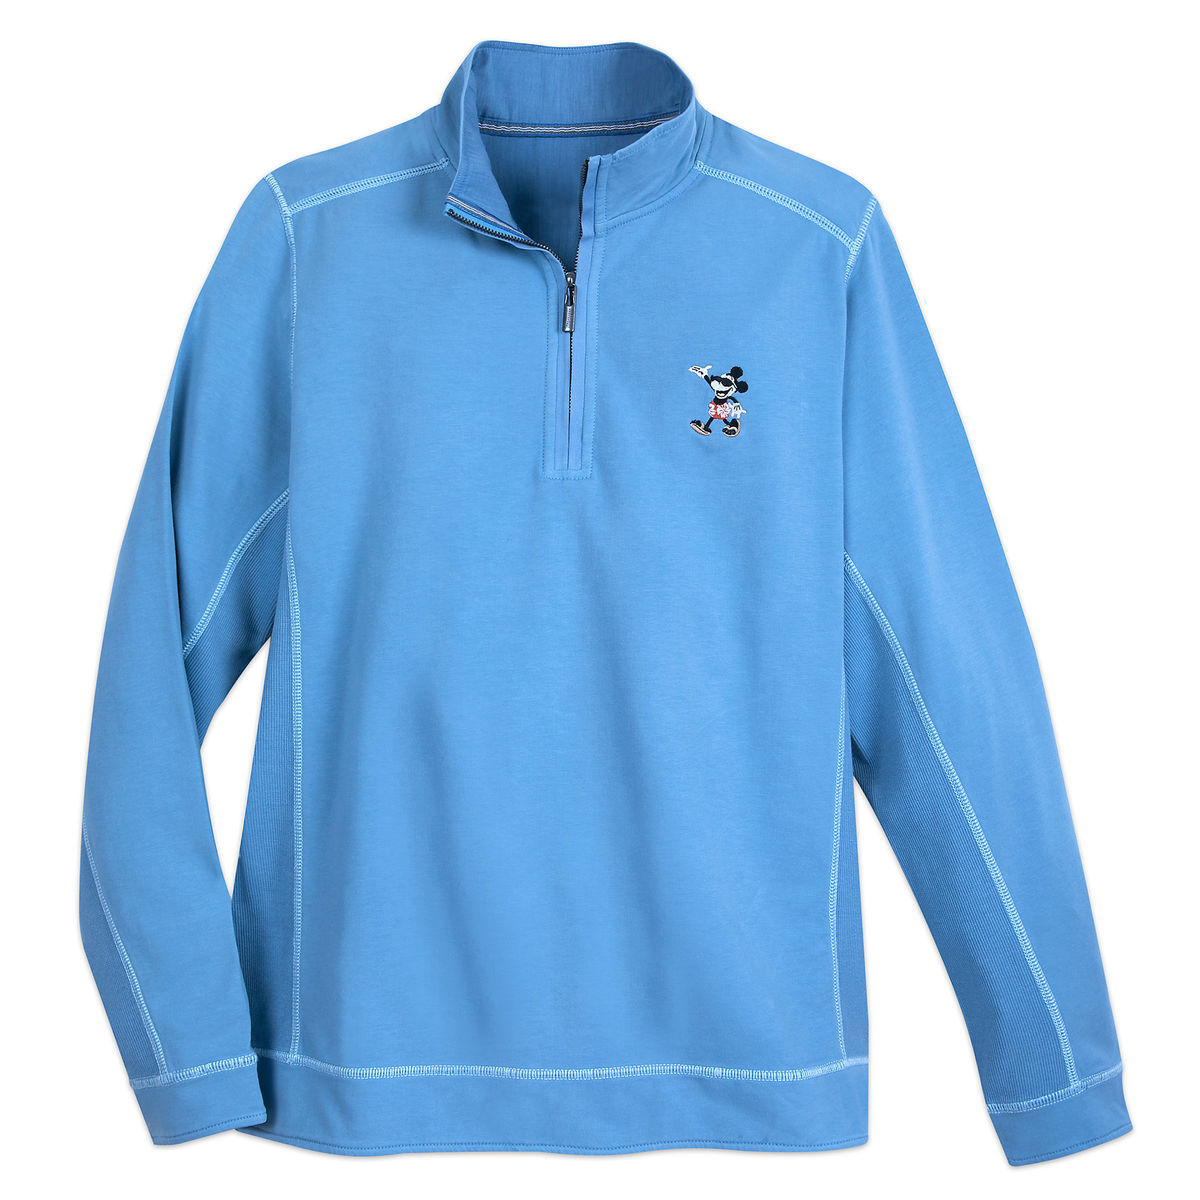 35e9b772102f1 Product Image of Mickey Mouse Pullover for Men by Tommy Bahama - Blue   1